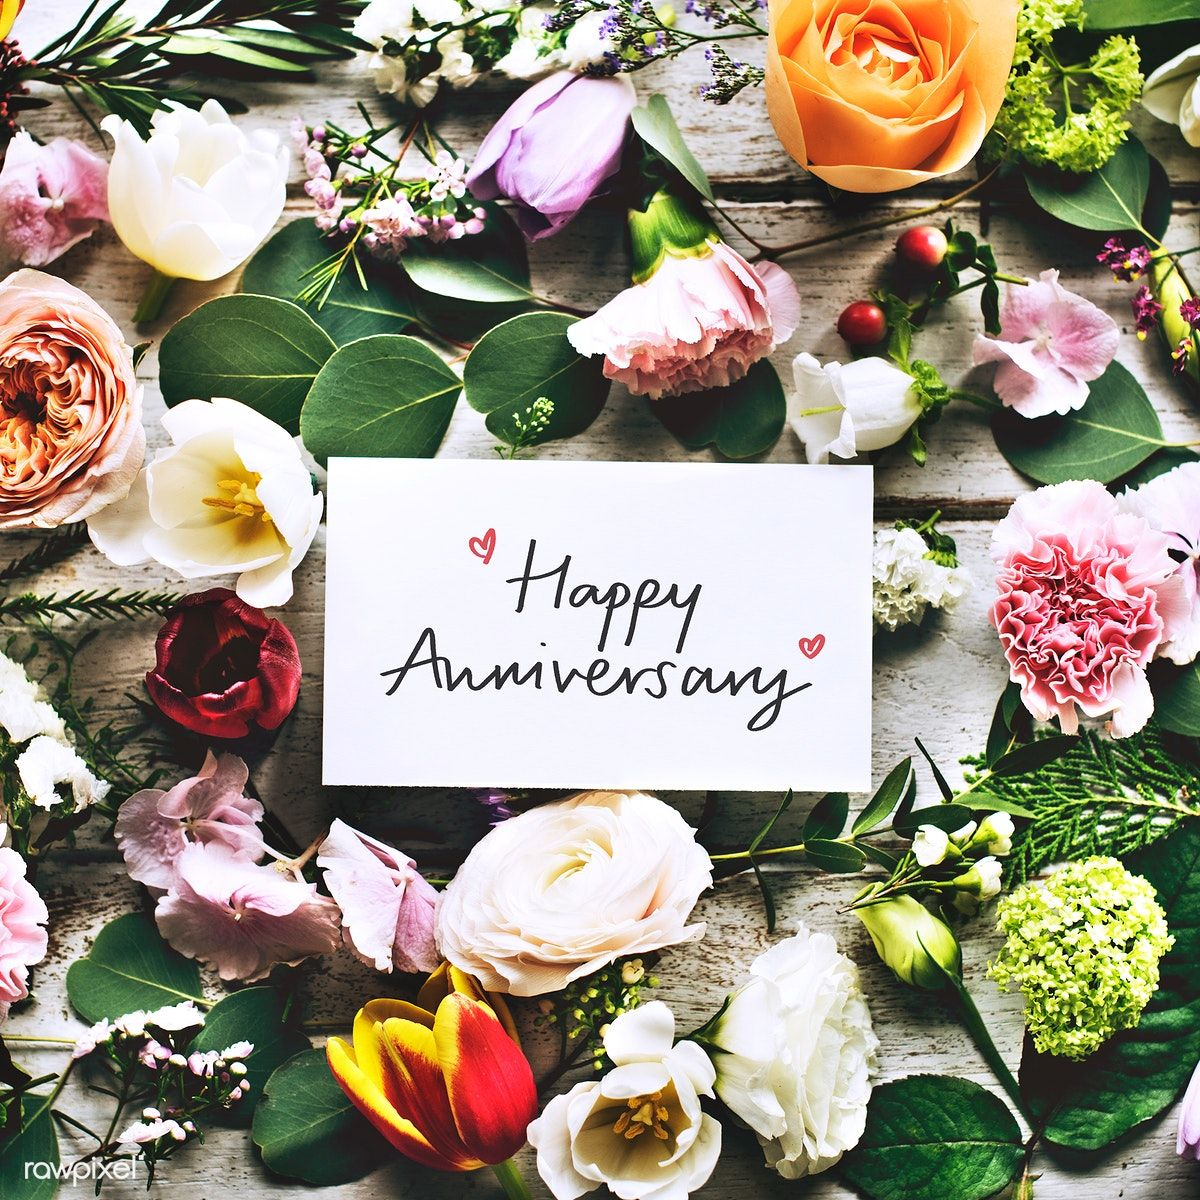 Download premium photo of Happy Anniversary card and